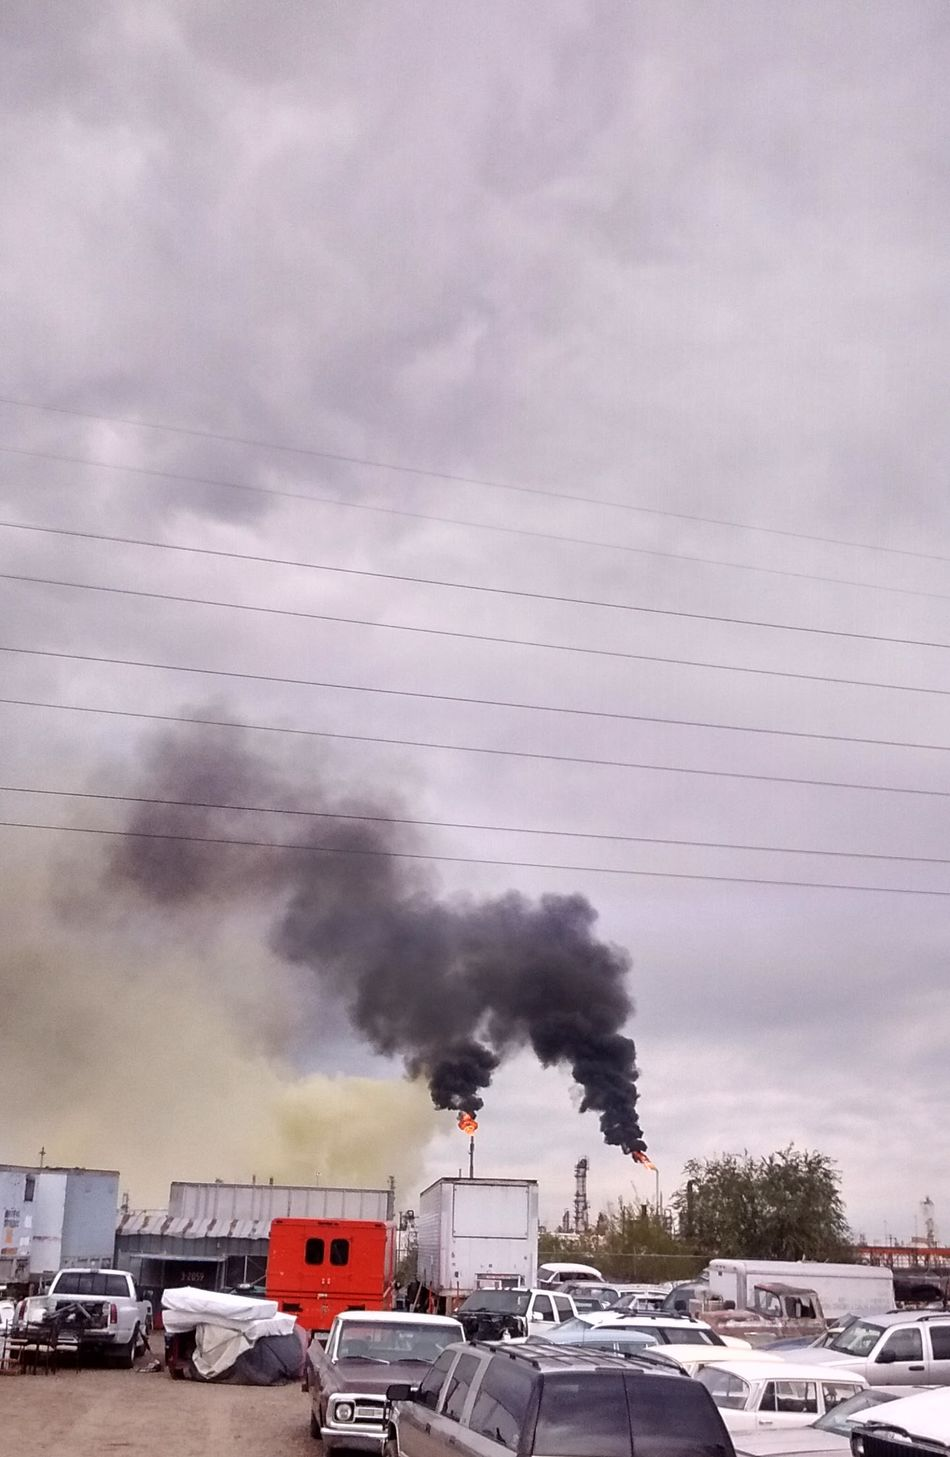 "2016 Suncore Refinery ""Yellow Plume"" Commerce City, Colorado ENVIRONMENTAL HAZARD as it was happening. 911 Air Pollution Day Emergency Emitting Factory Fumes HAZMAT Cleanup Industry Nature Outdoors Plume Pollution Pollution In My World Sky Smoke - Physical Structure Smoke Stack Yellow Plume"